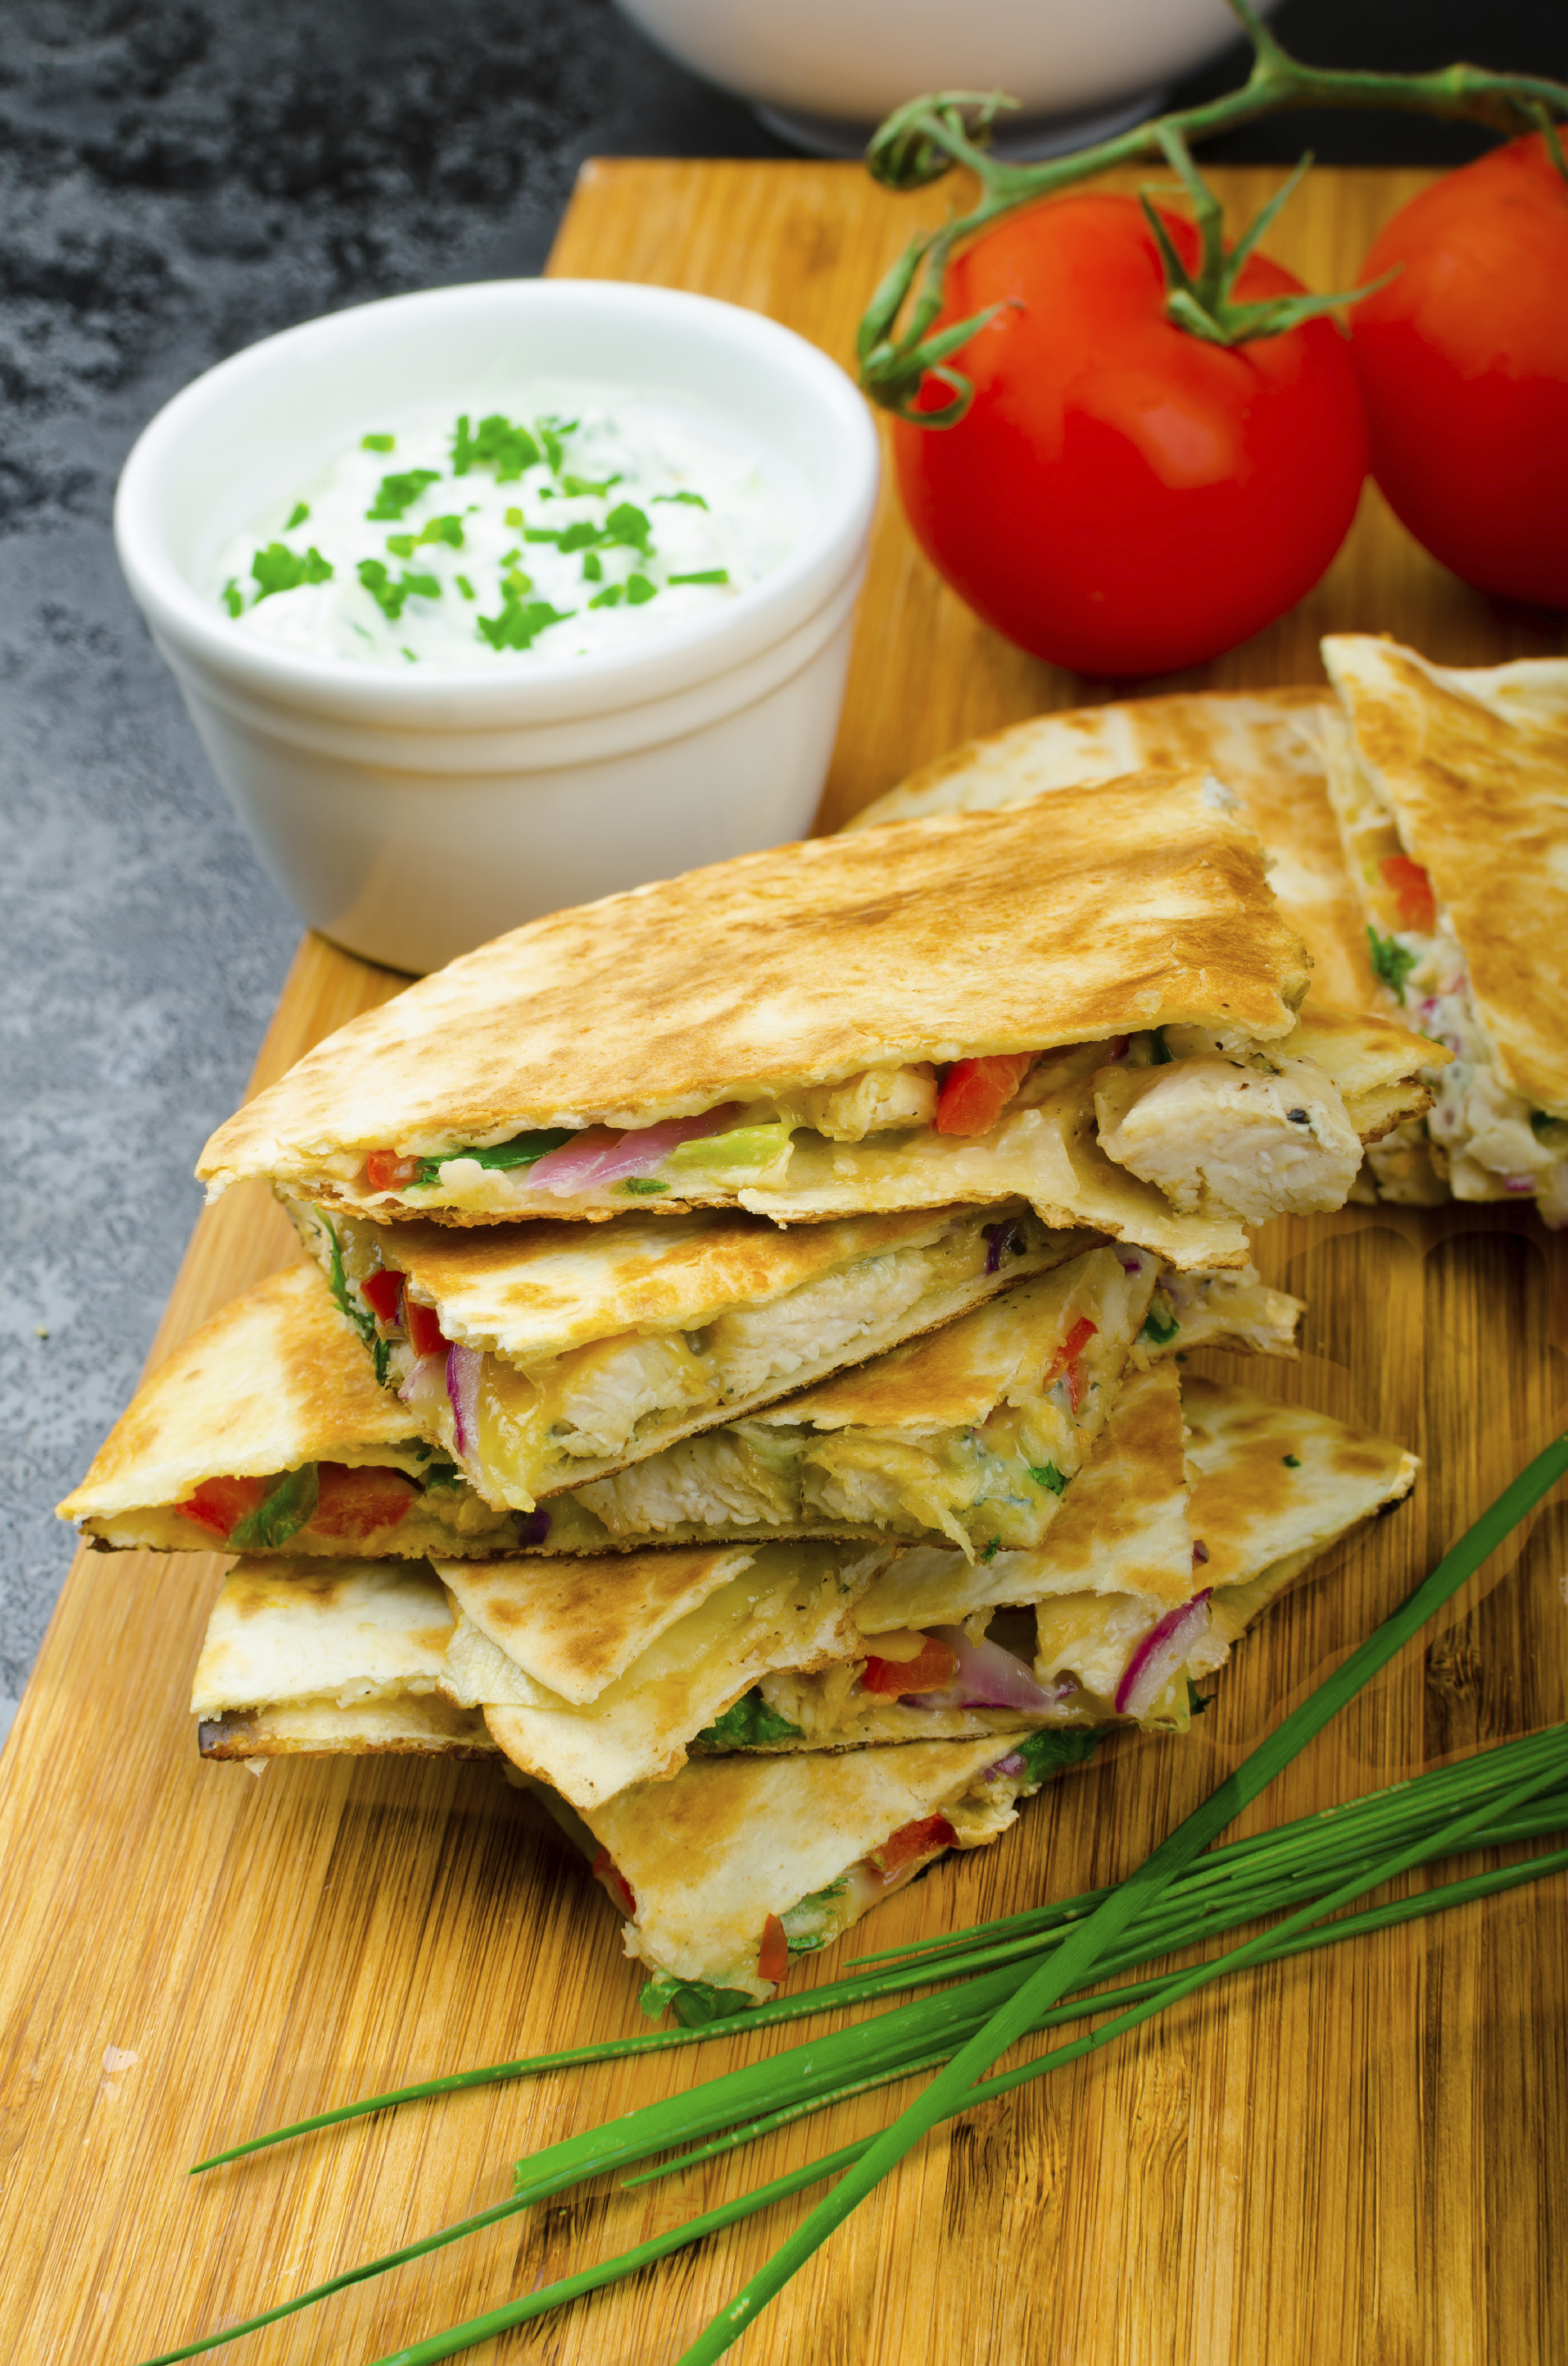 Try These 25 Quesadilla Recipes for Lunch or Dinner